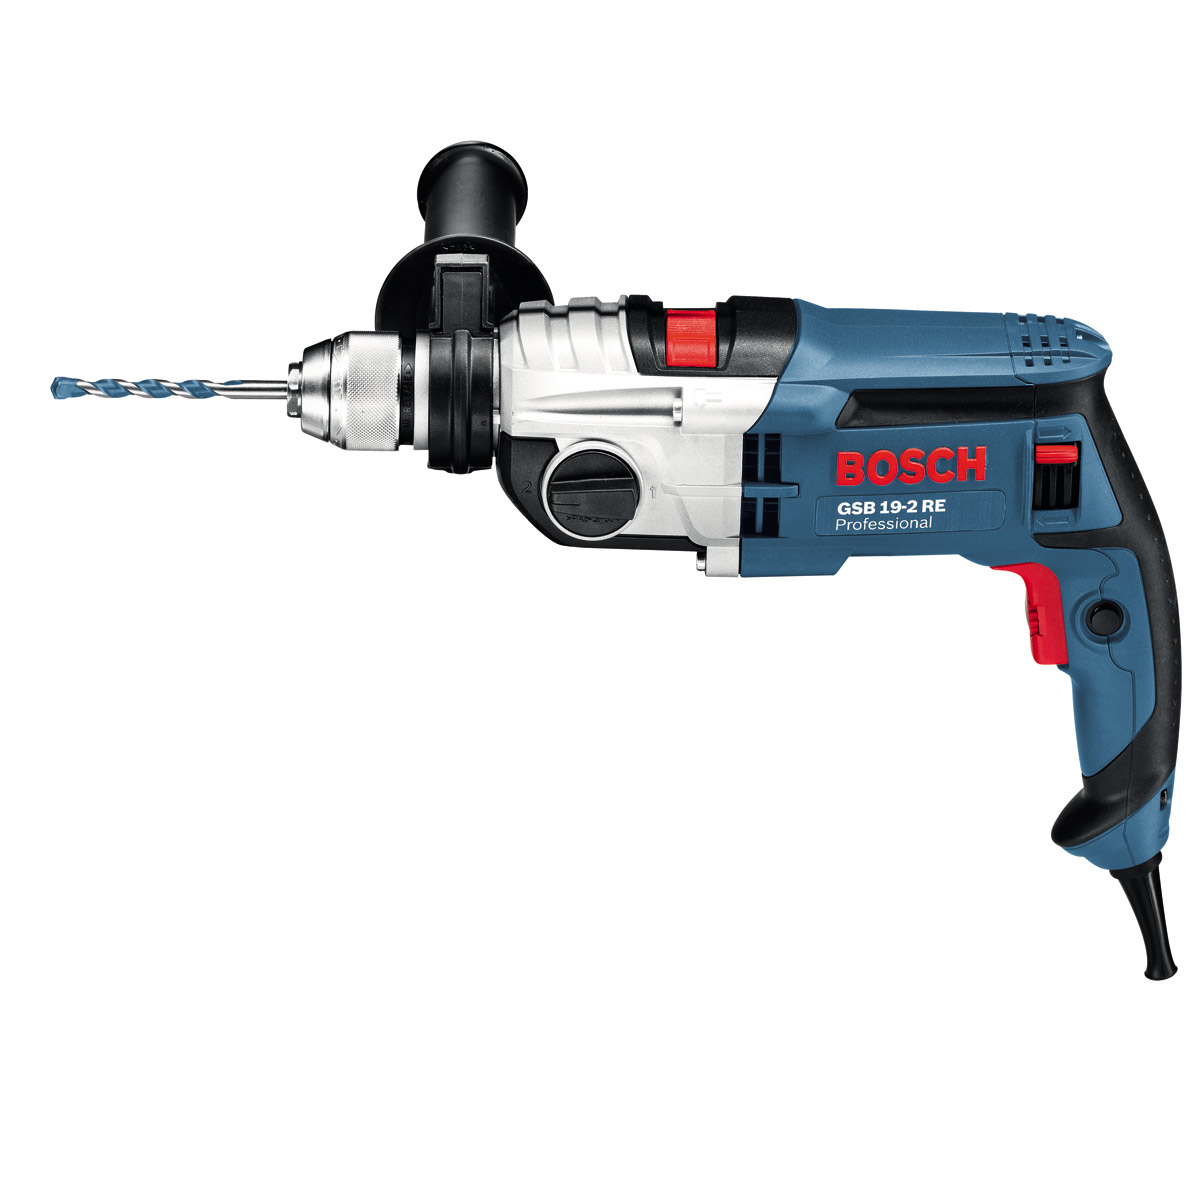 bosch gsb 19 2re two speed impact drill m w murphy son ltd. Black Bedroom Furniture Sets. Home Design Ideas